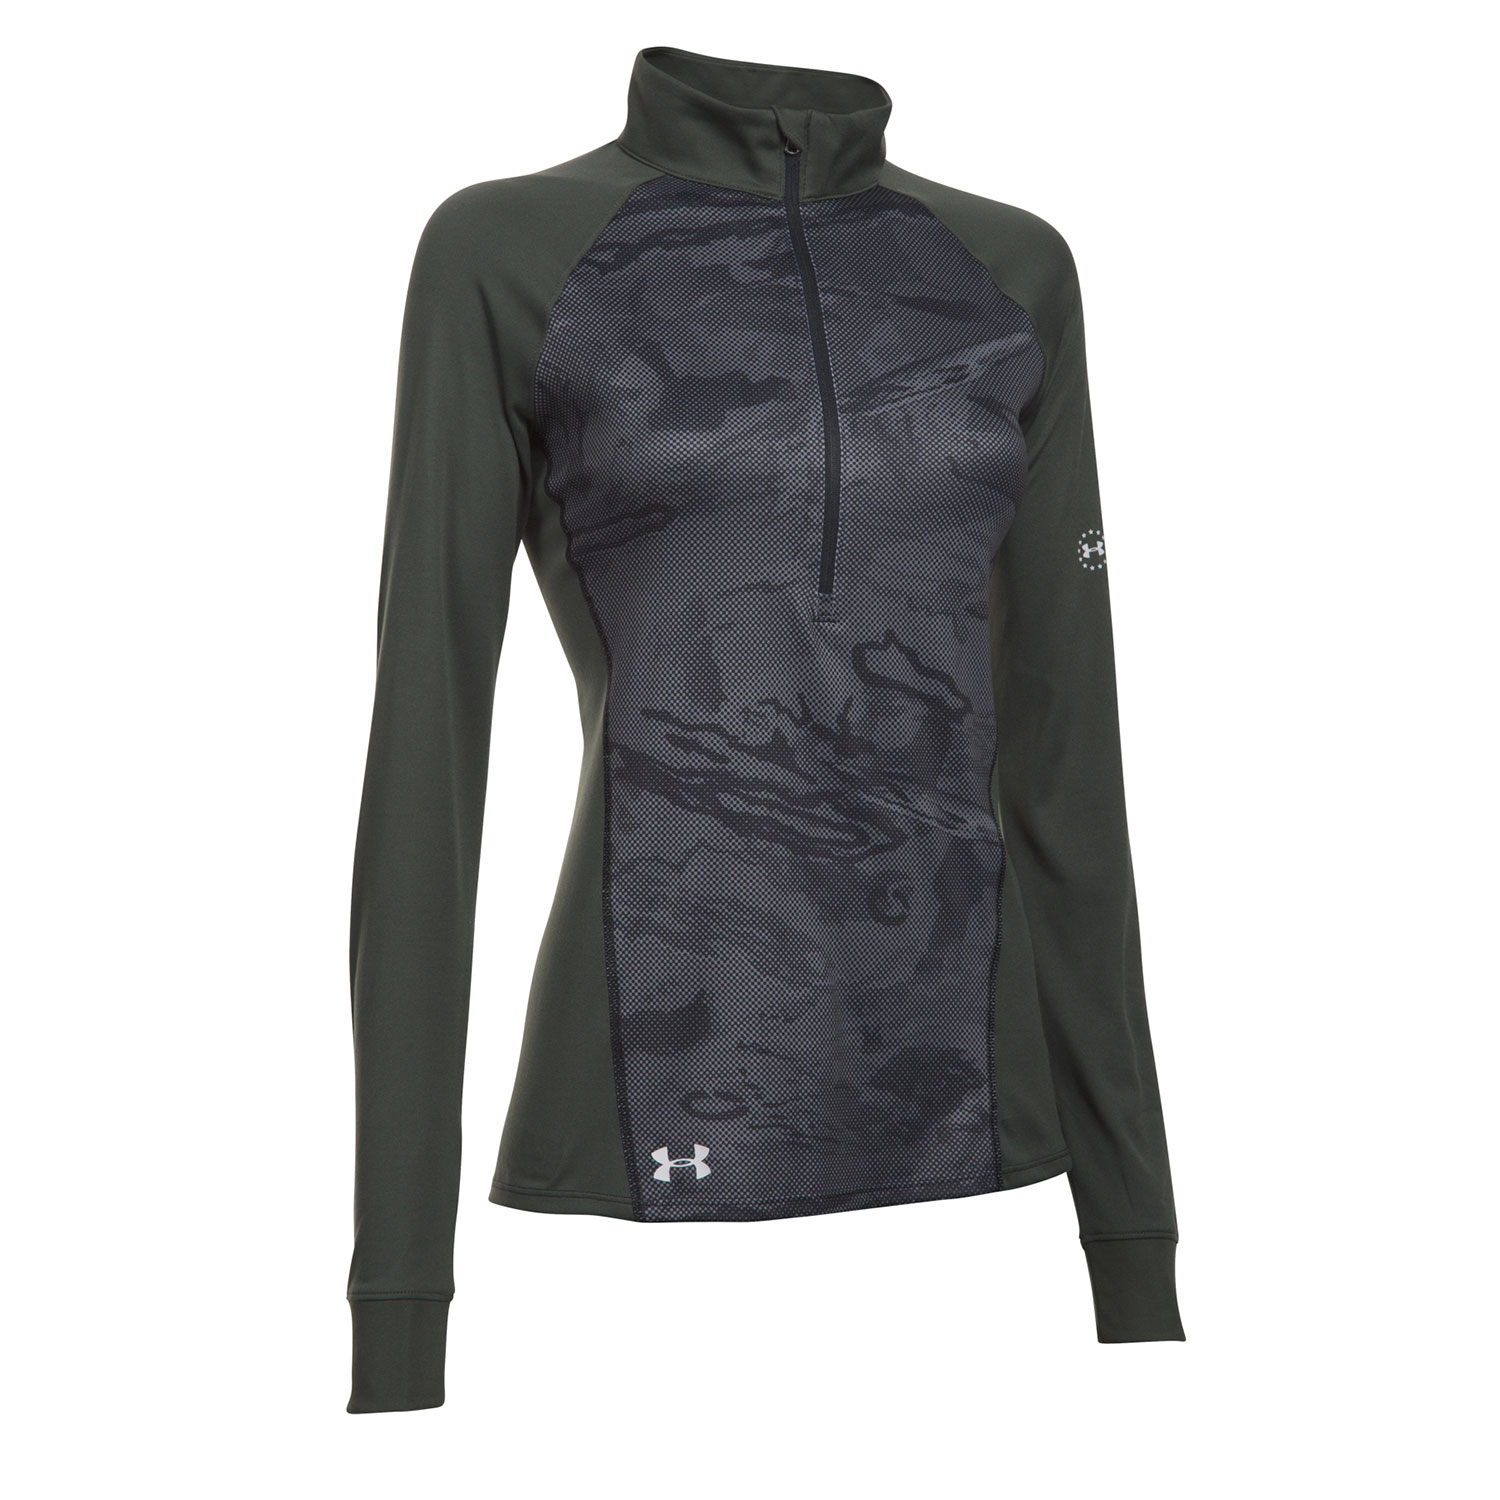 Under Armour Women's UA Tech Freedom ½ Zip